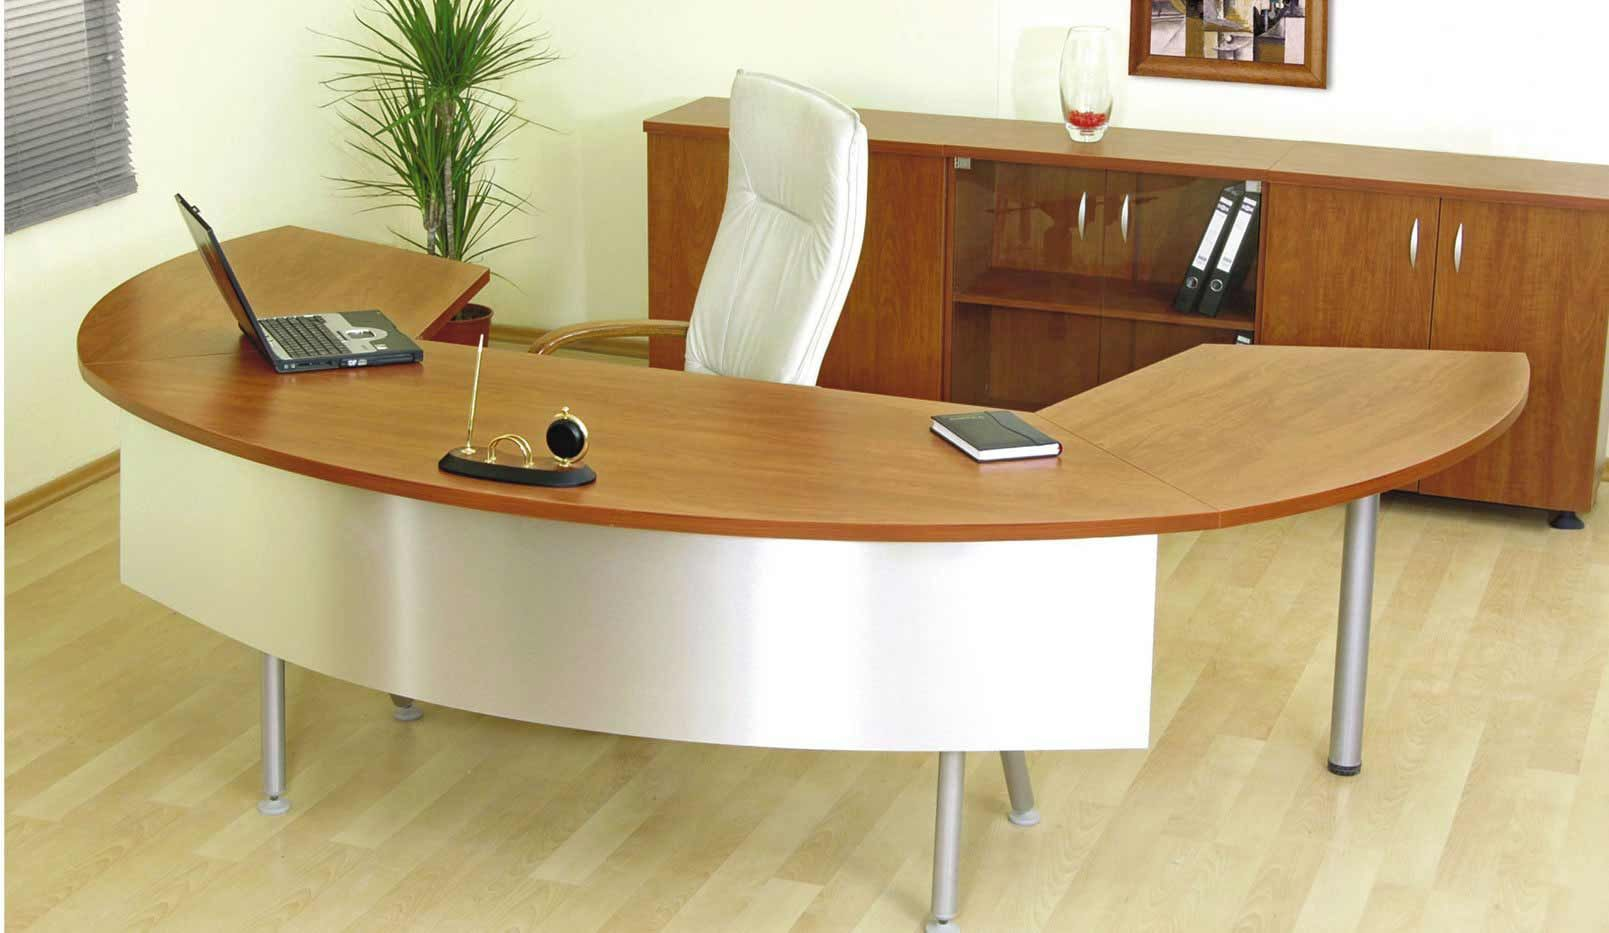 5 Unique Home Office Styles And Desks To Match Home